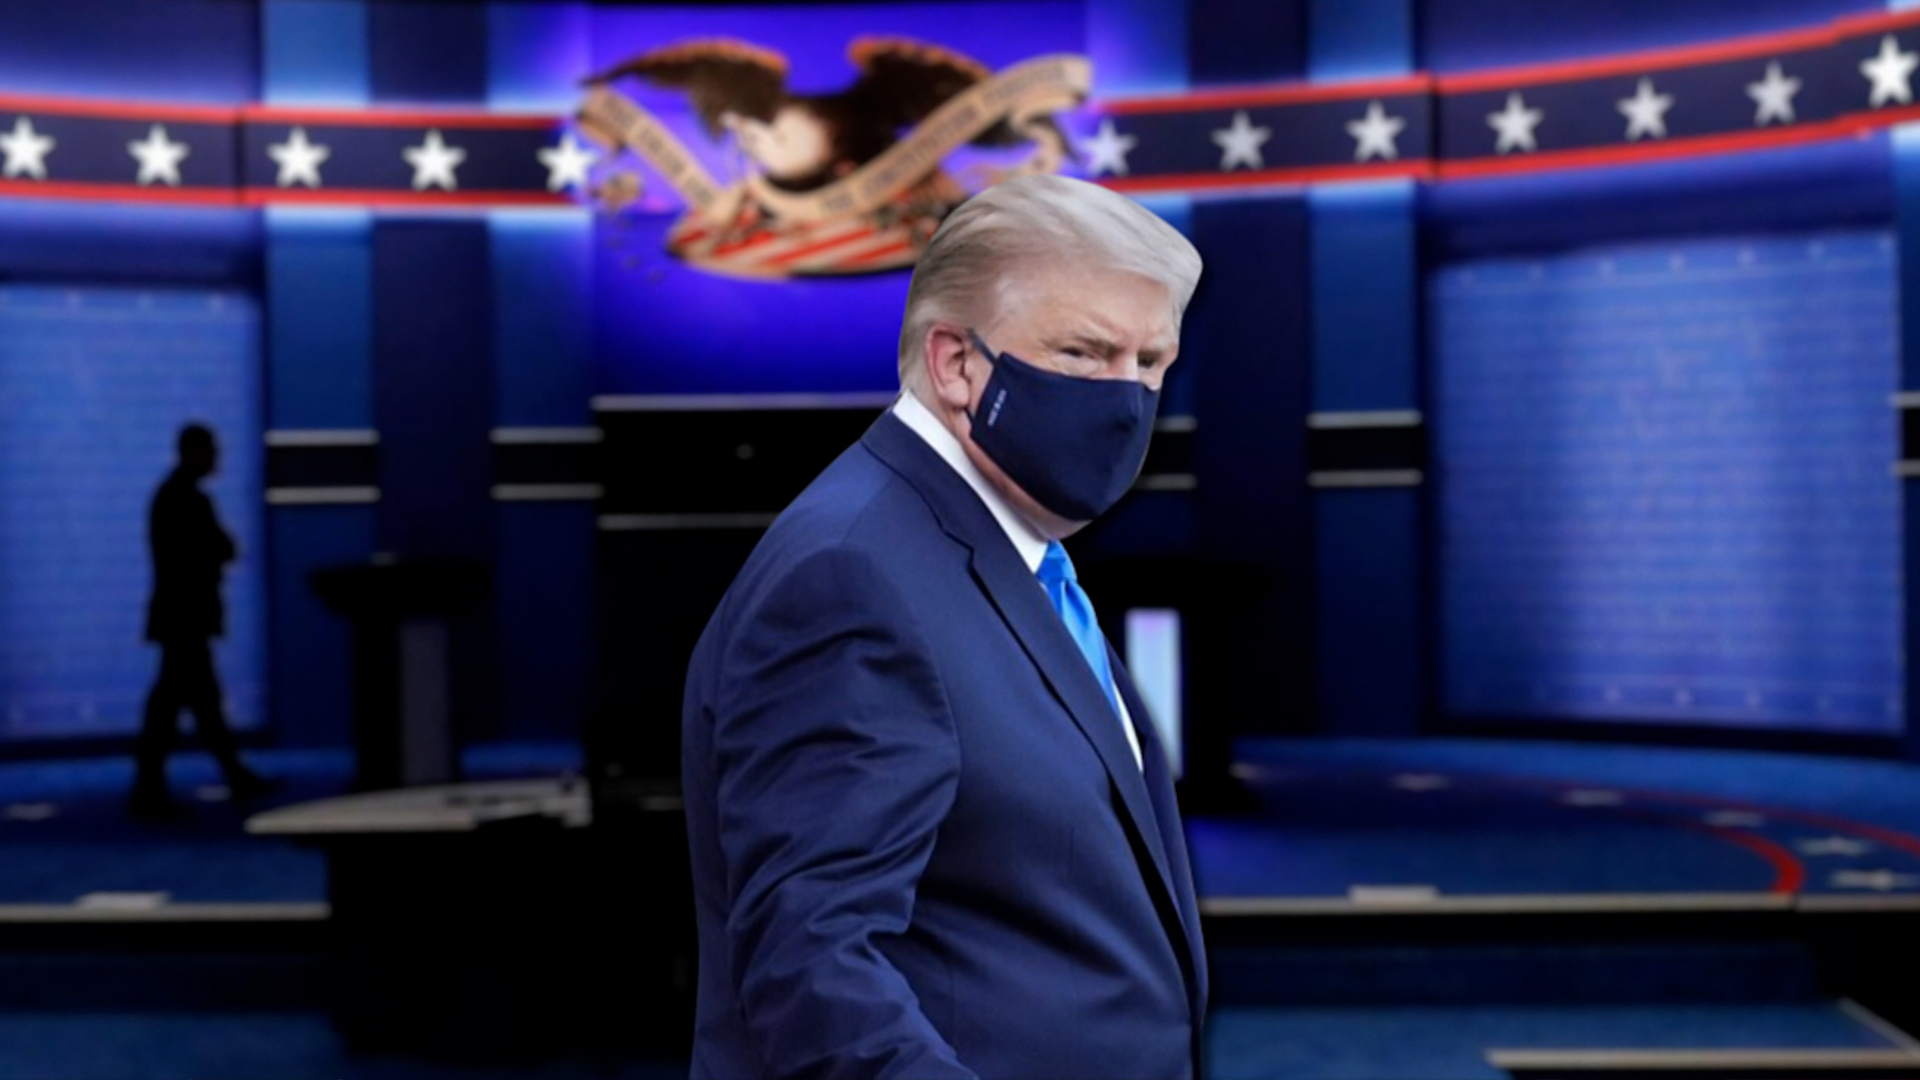 Ep.206 What does Trump's positive COVID-19 test mean for the U.S. presidential election?